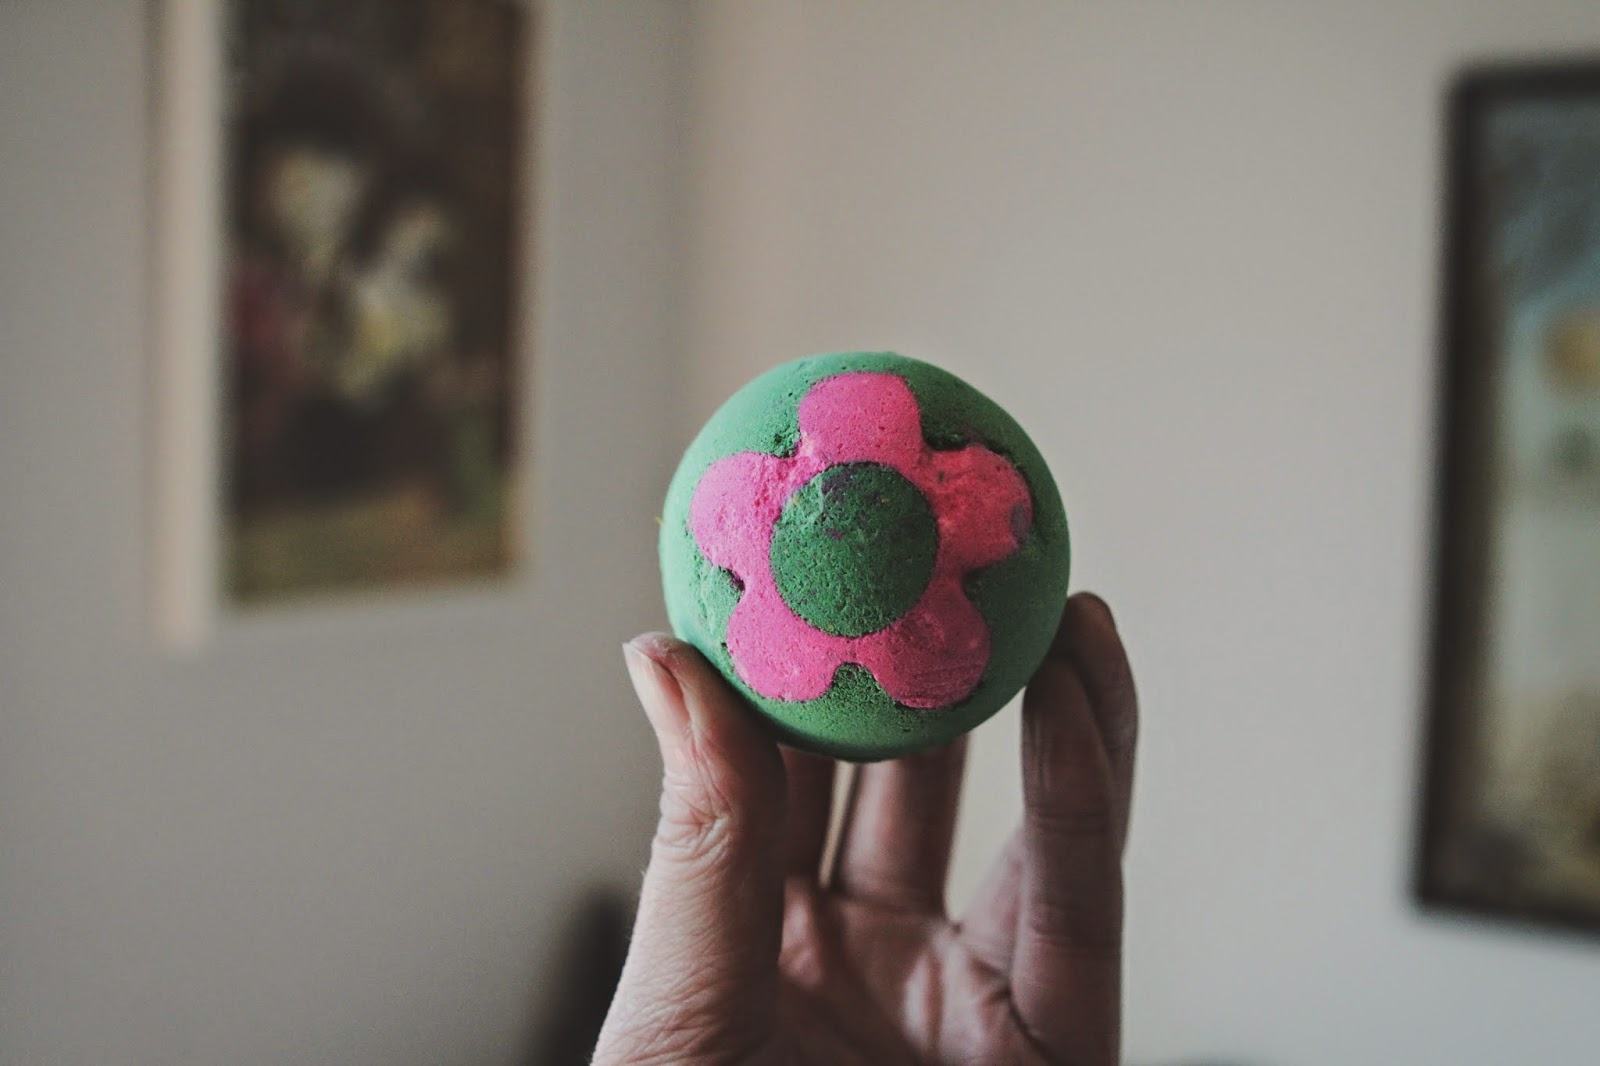 https://www.lush.co.uk/products/bath-bombs/secret-garden